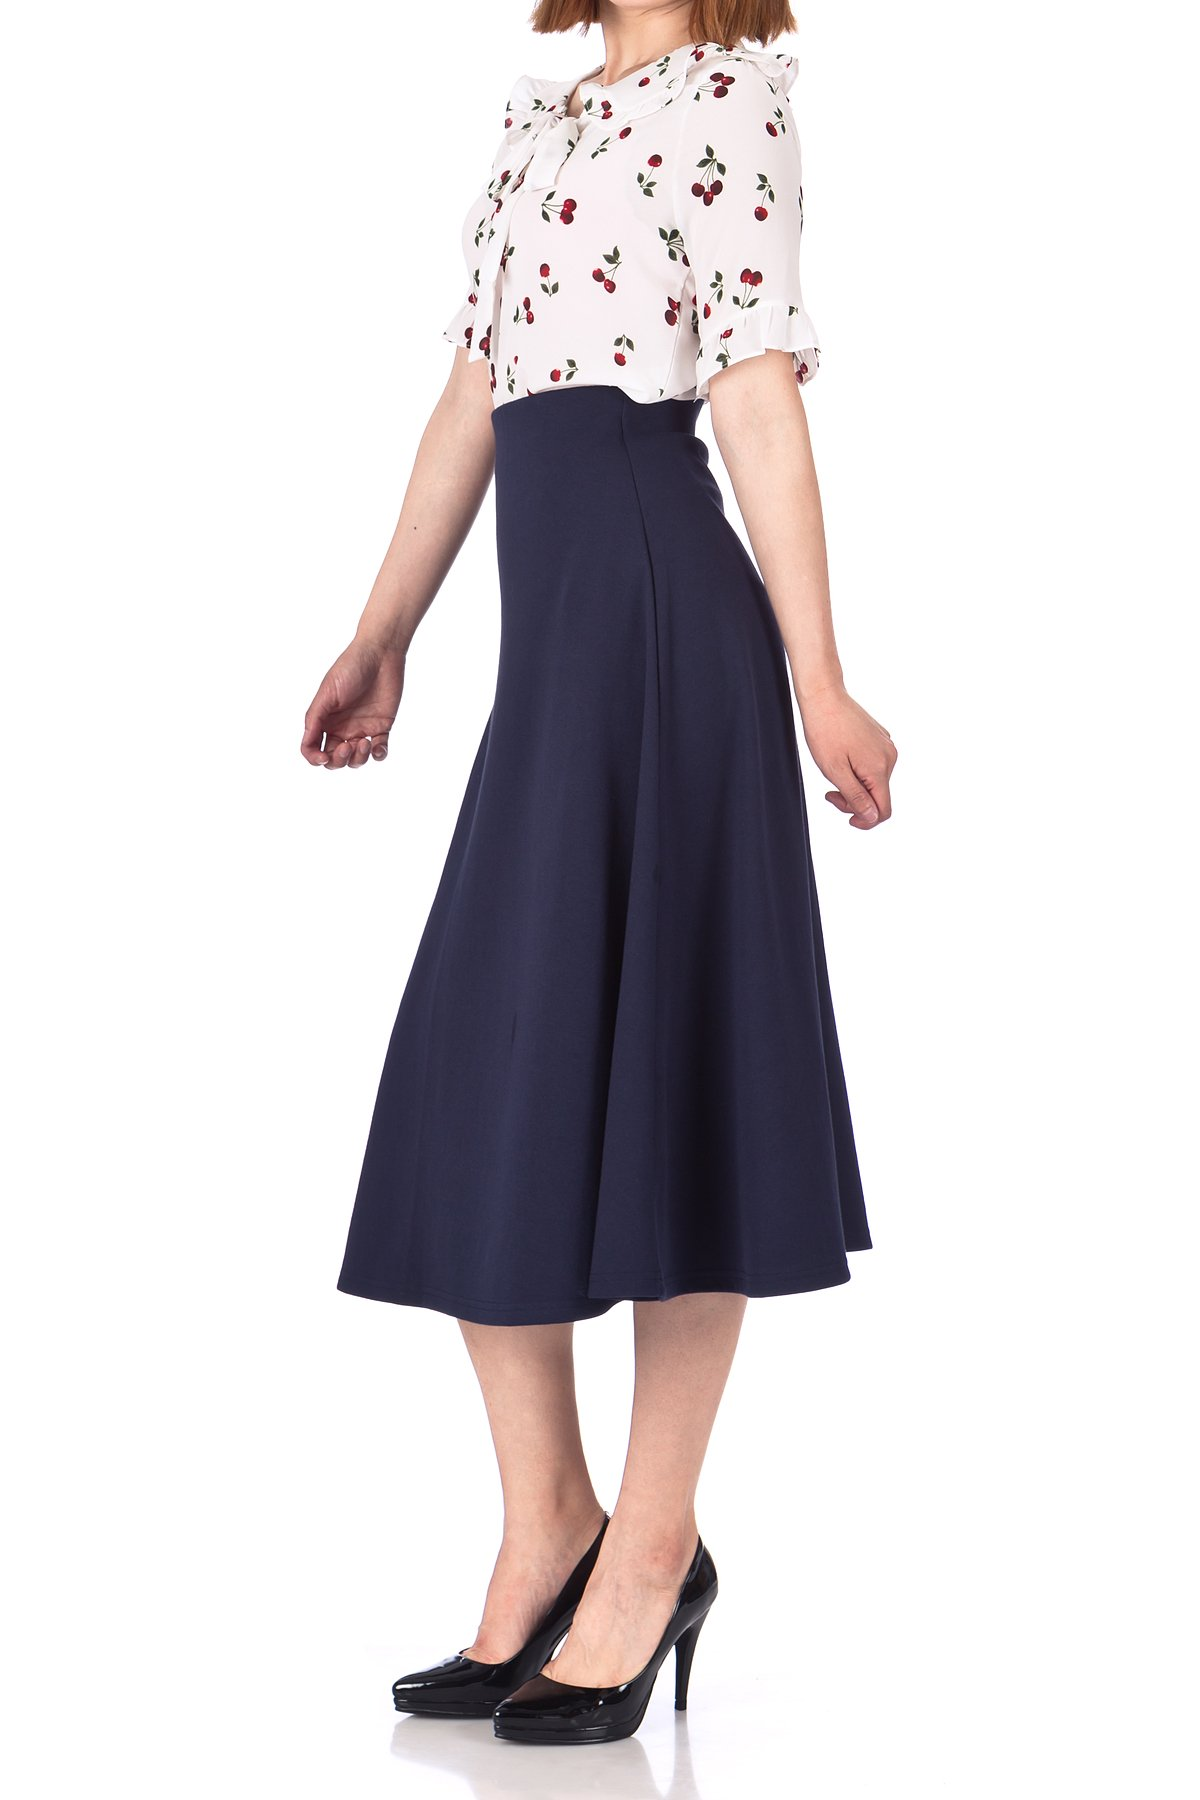 Elastic Waist A line Flared Long Skirt Navy 04